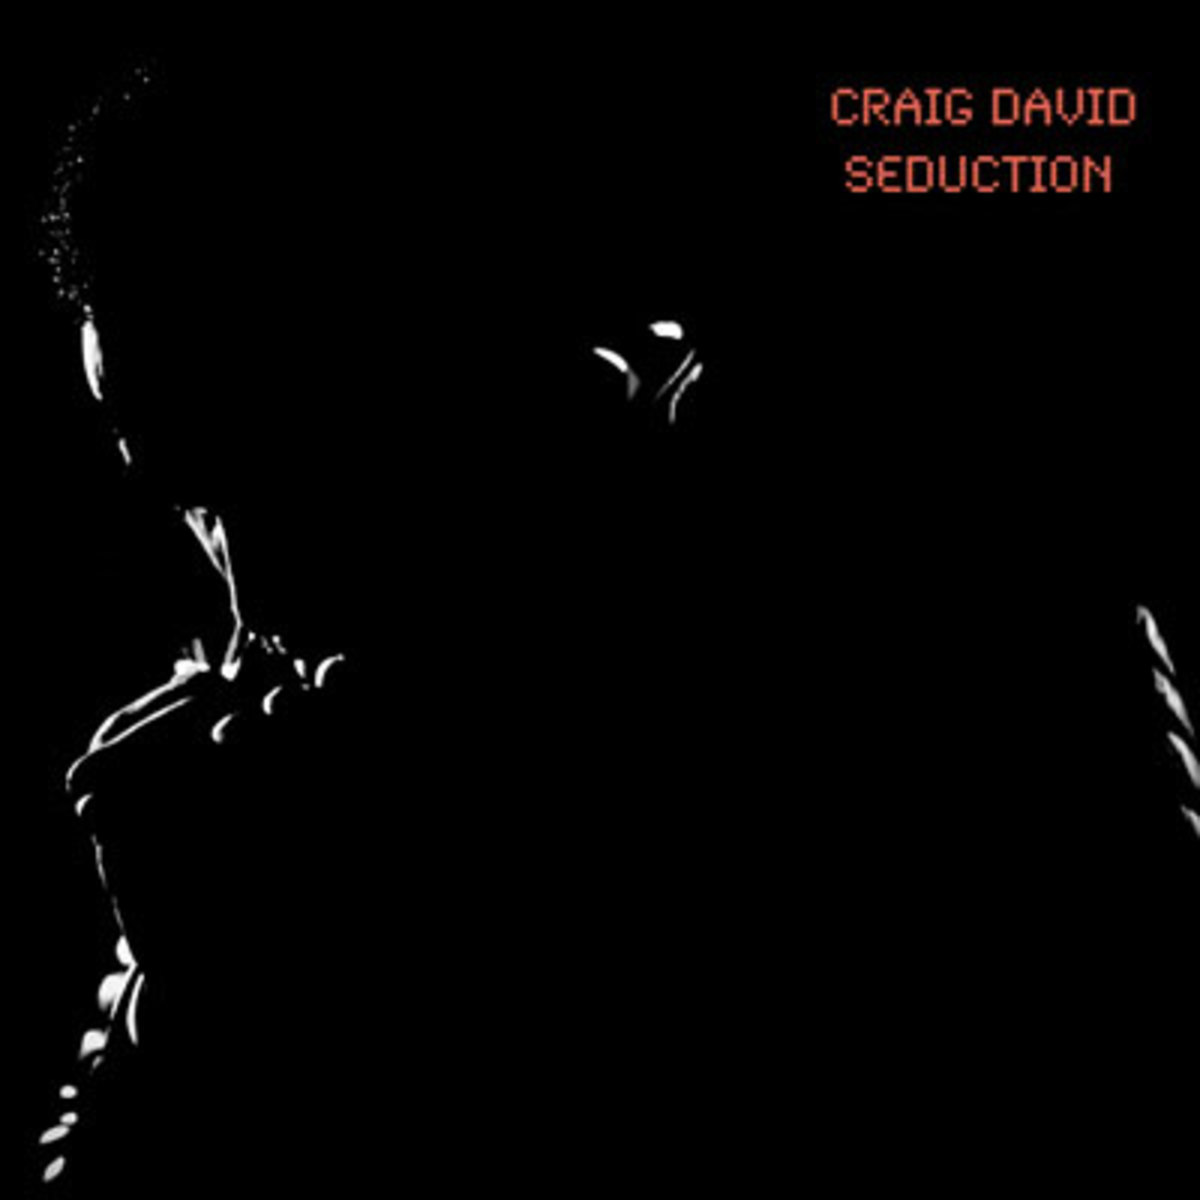 craigdavid-seduction.jpg